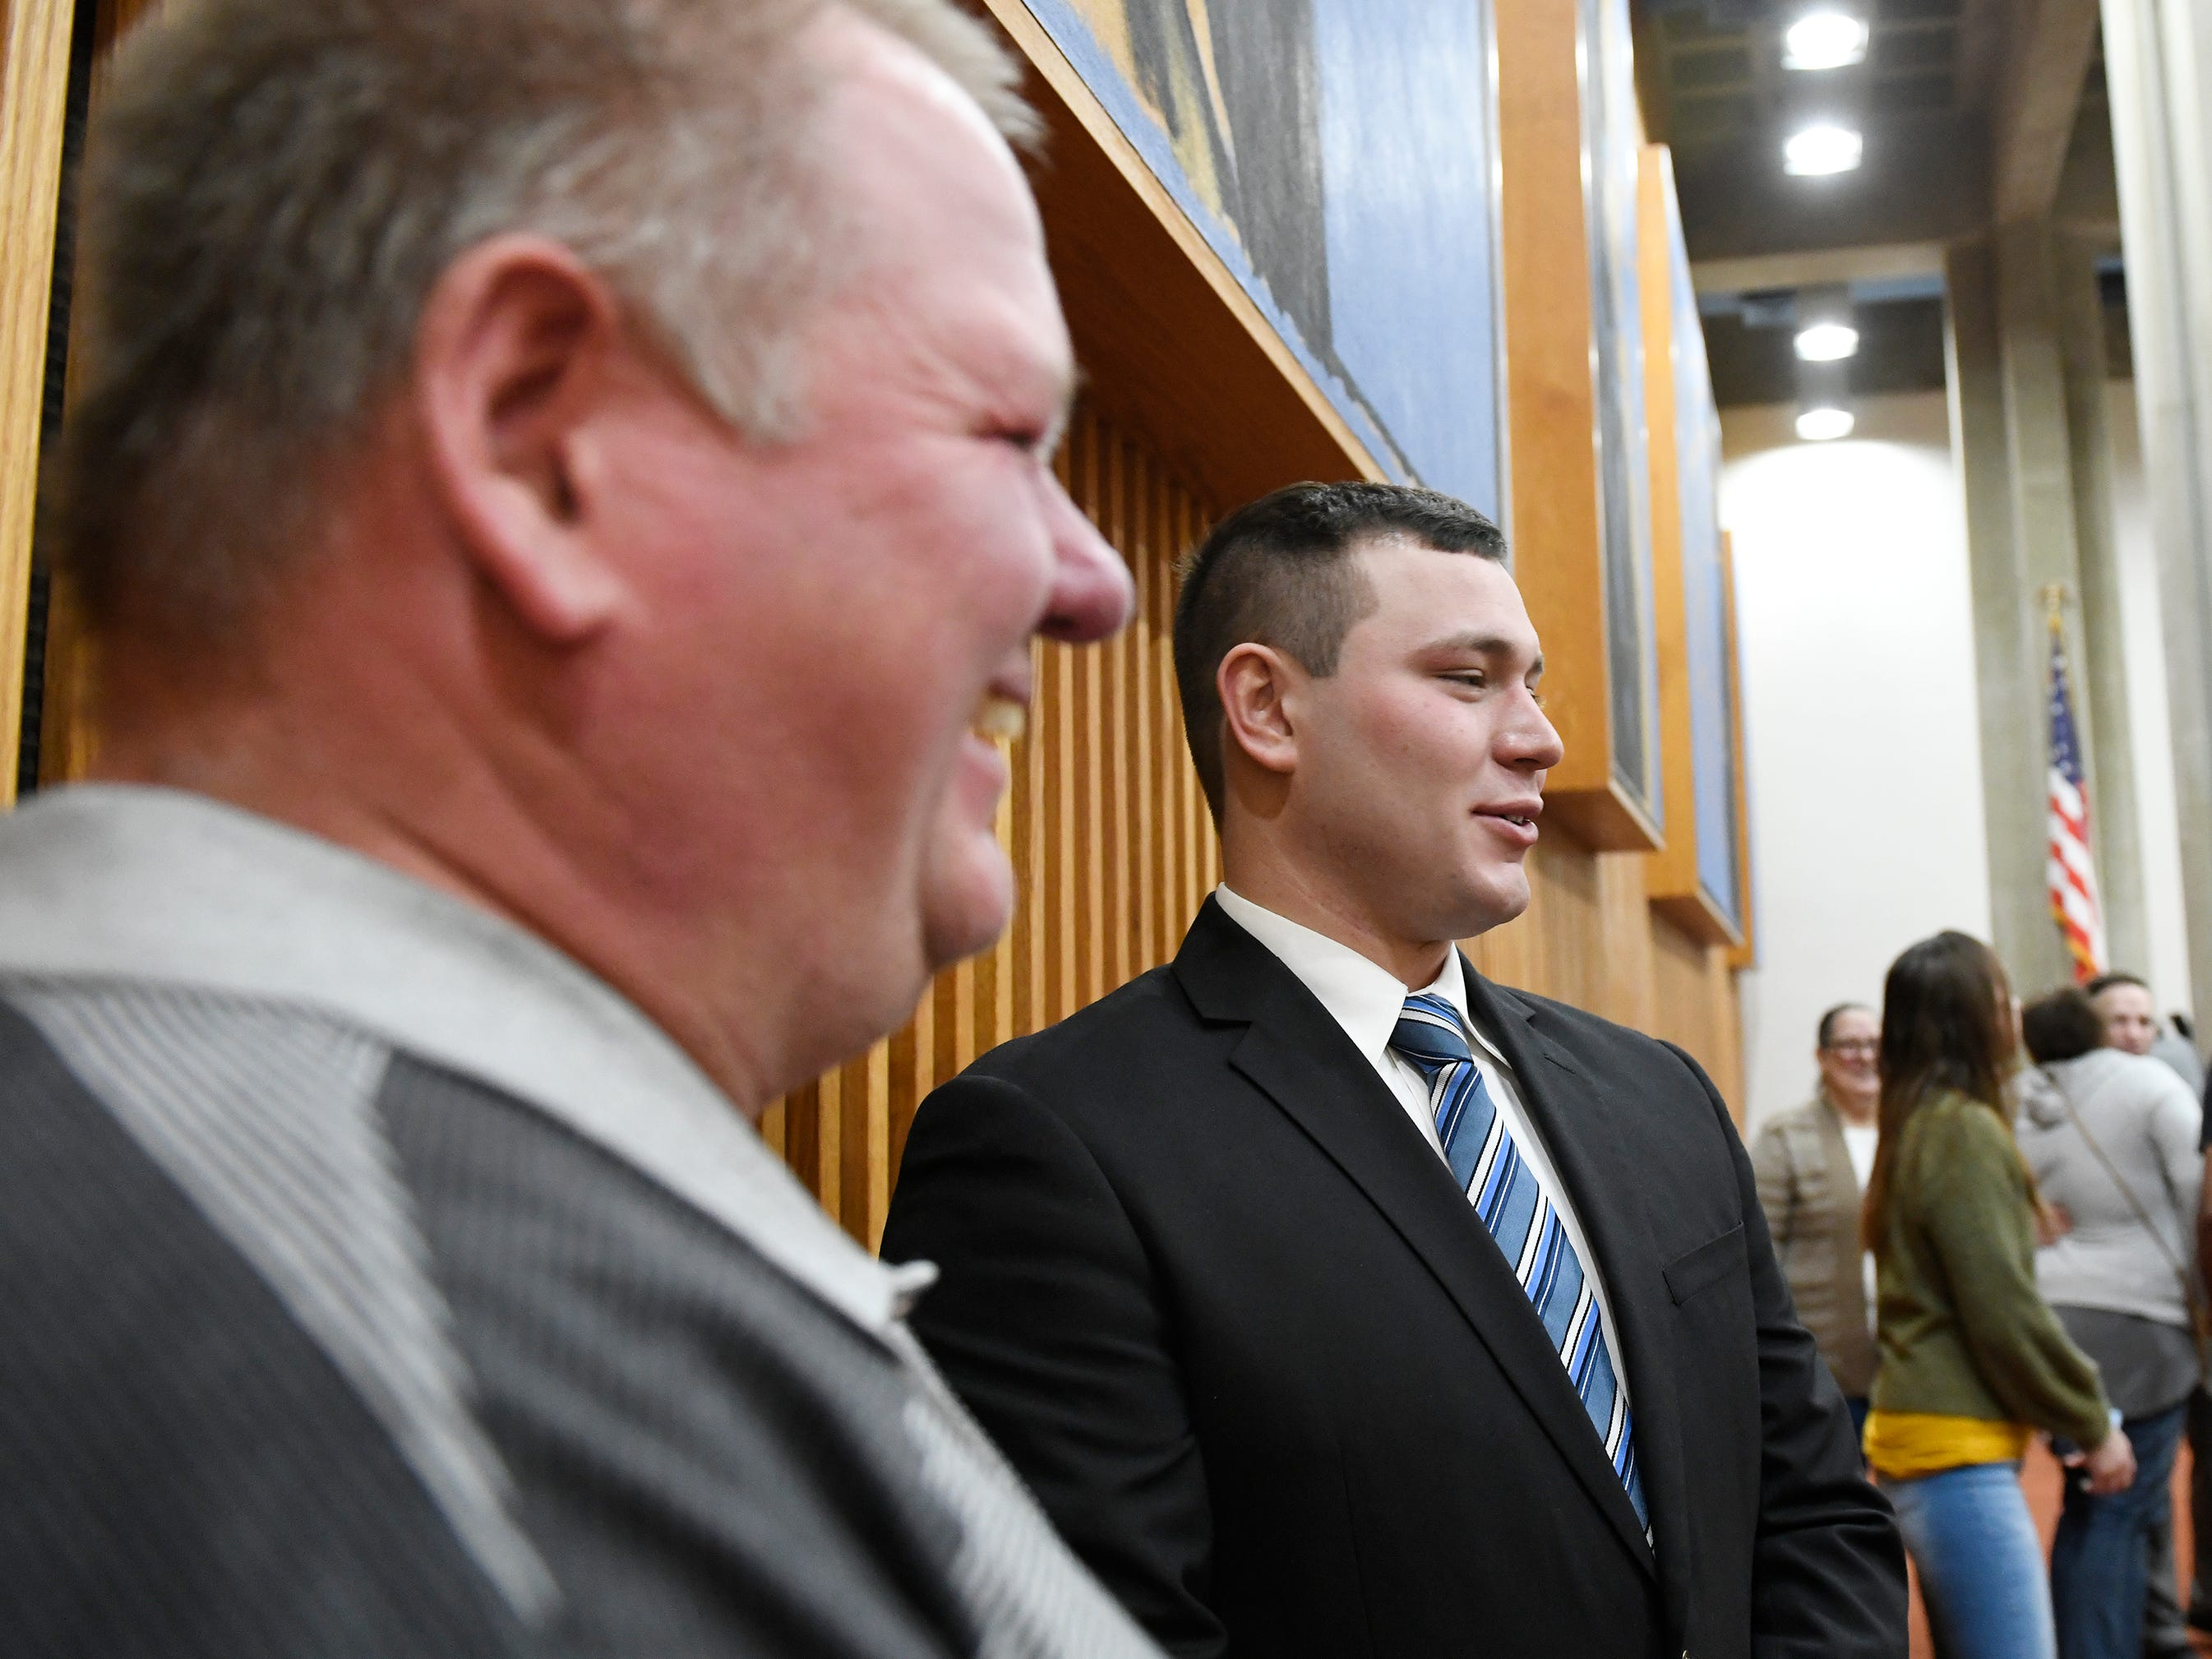 Christopher Yuhas (right) stands next to his father after being sworn in as a police officer at Vineland City Hall on Wednesday, Feb.27, 2019.